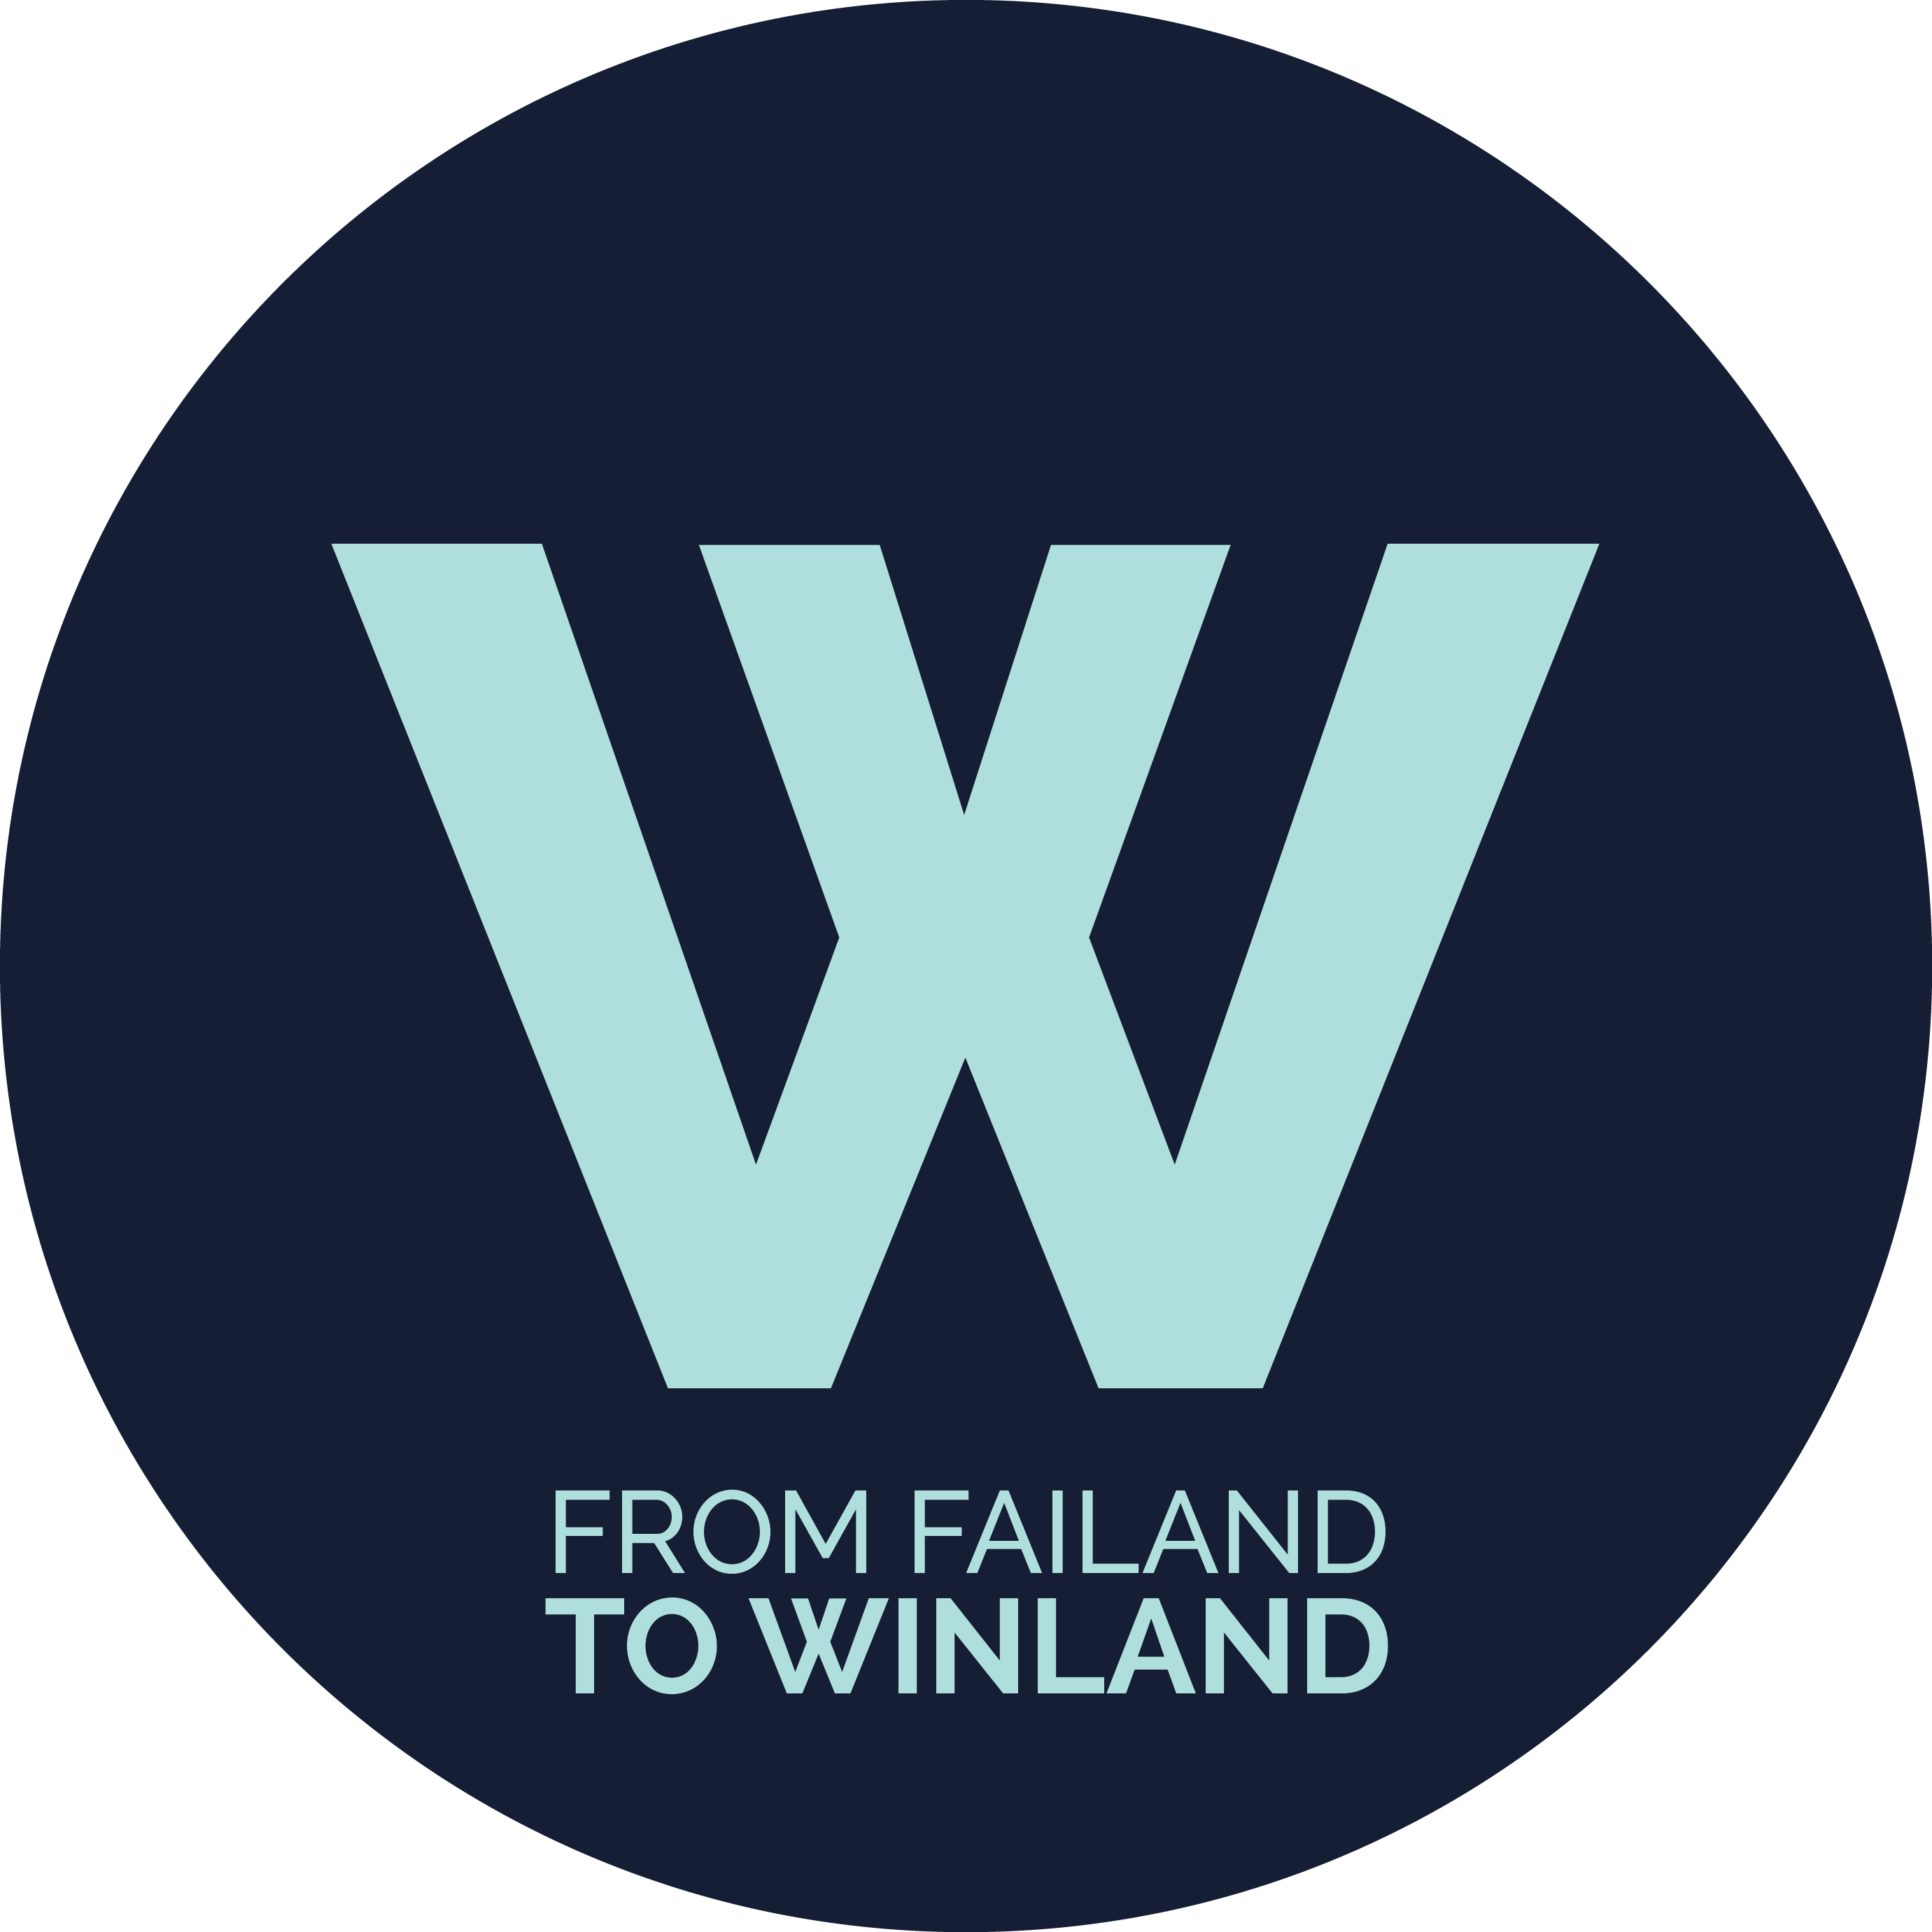 From Failand to Winland